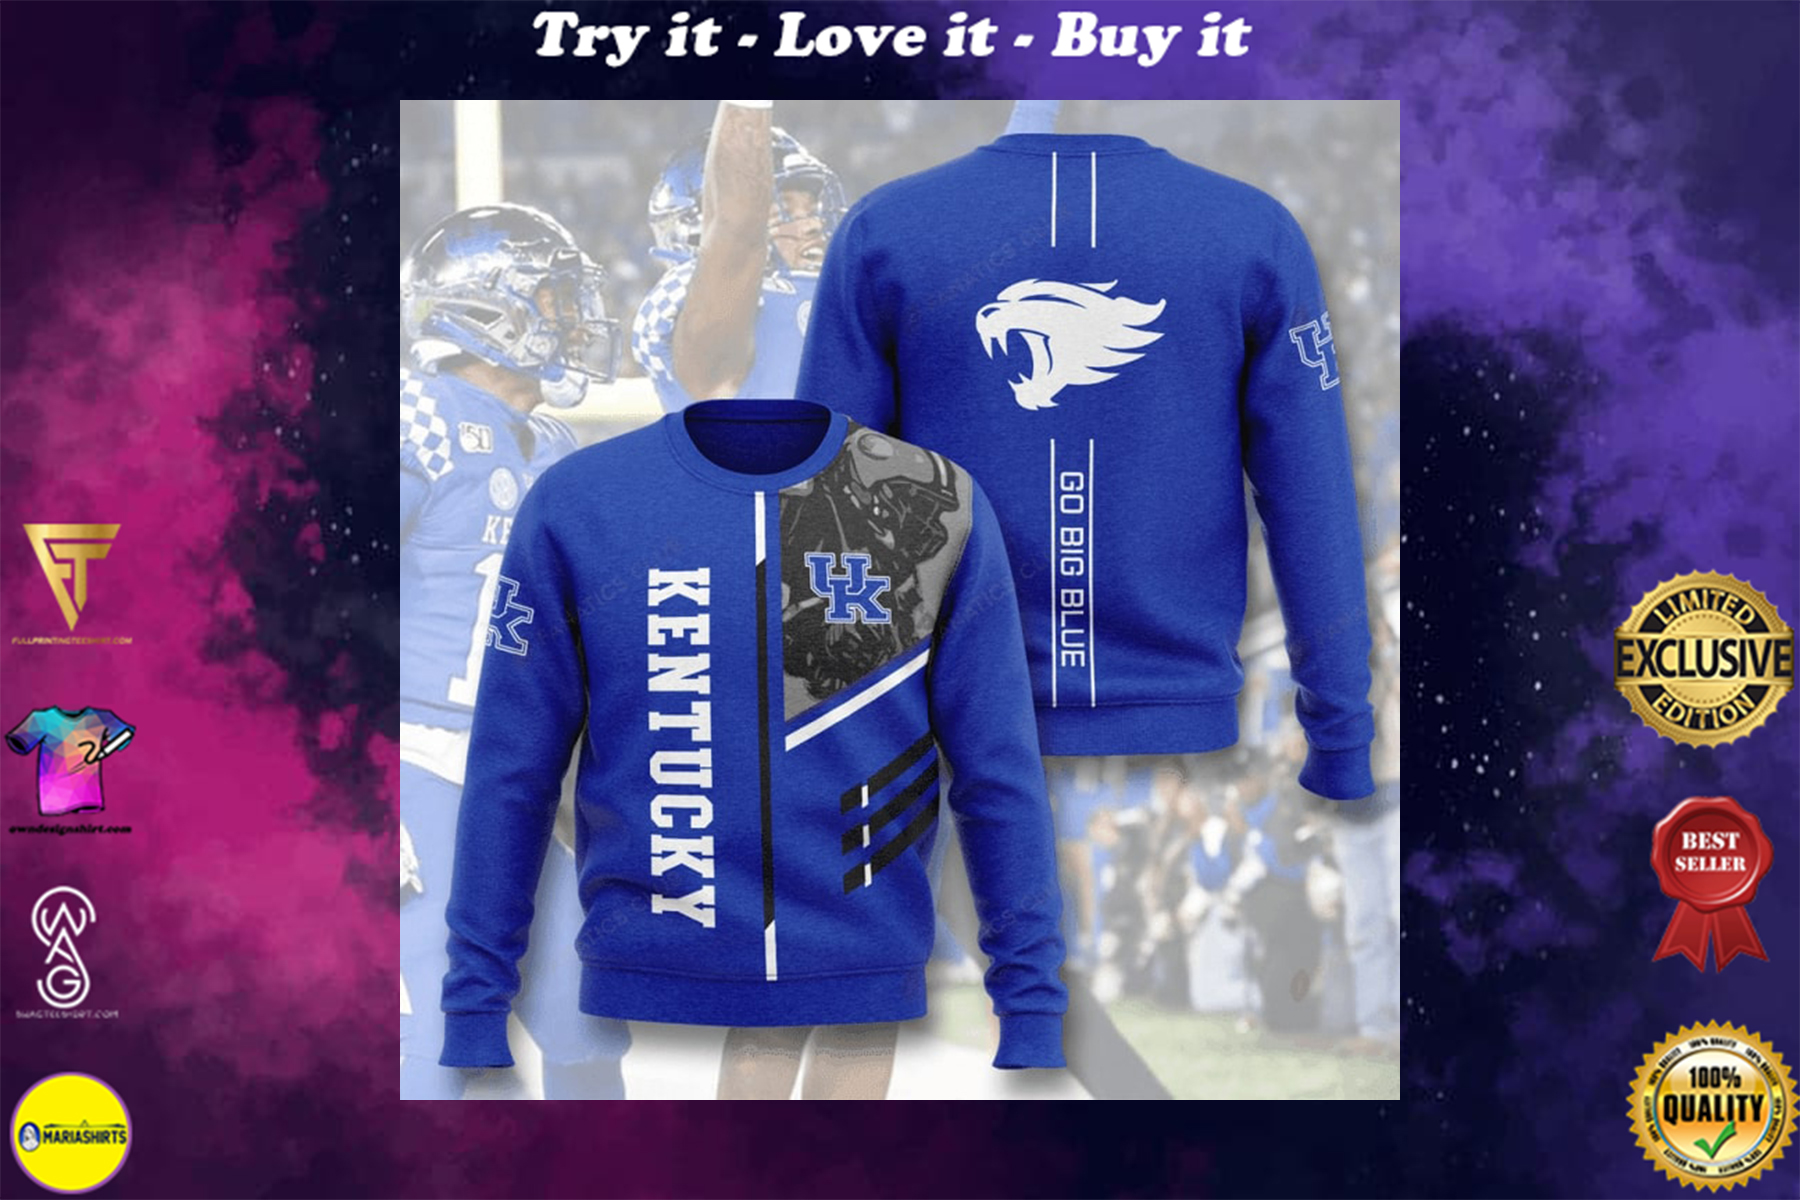 [special edition] kentucky wildcats go big blue full printing ugly sweater - maria